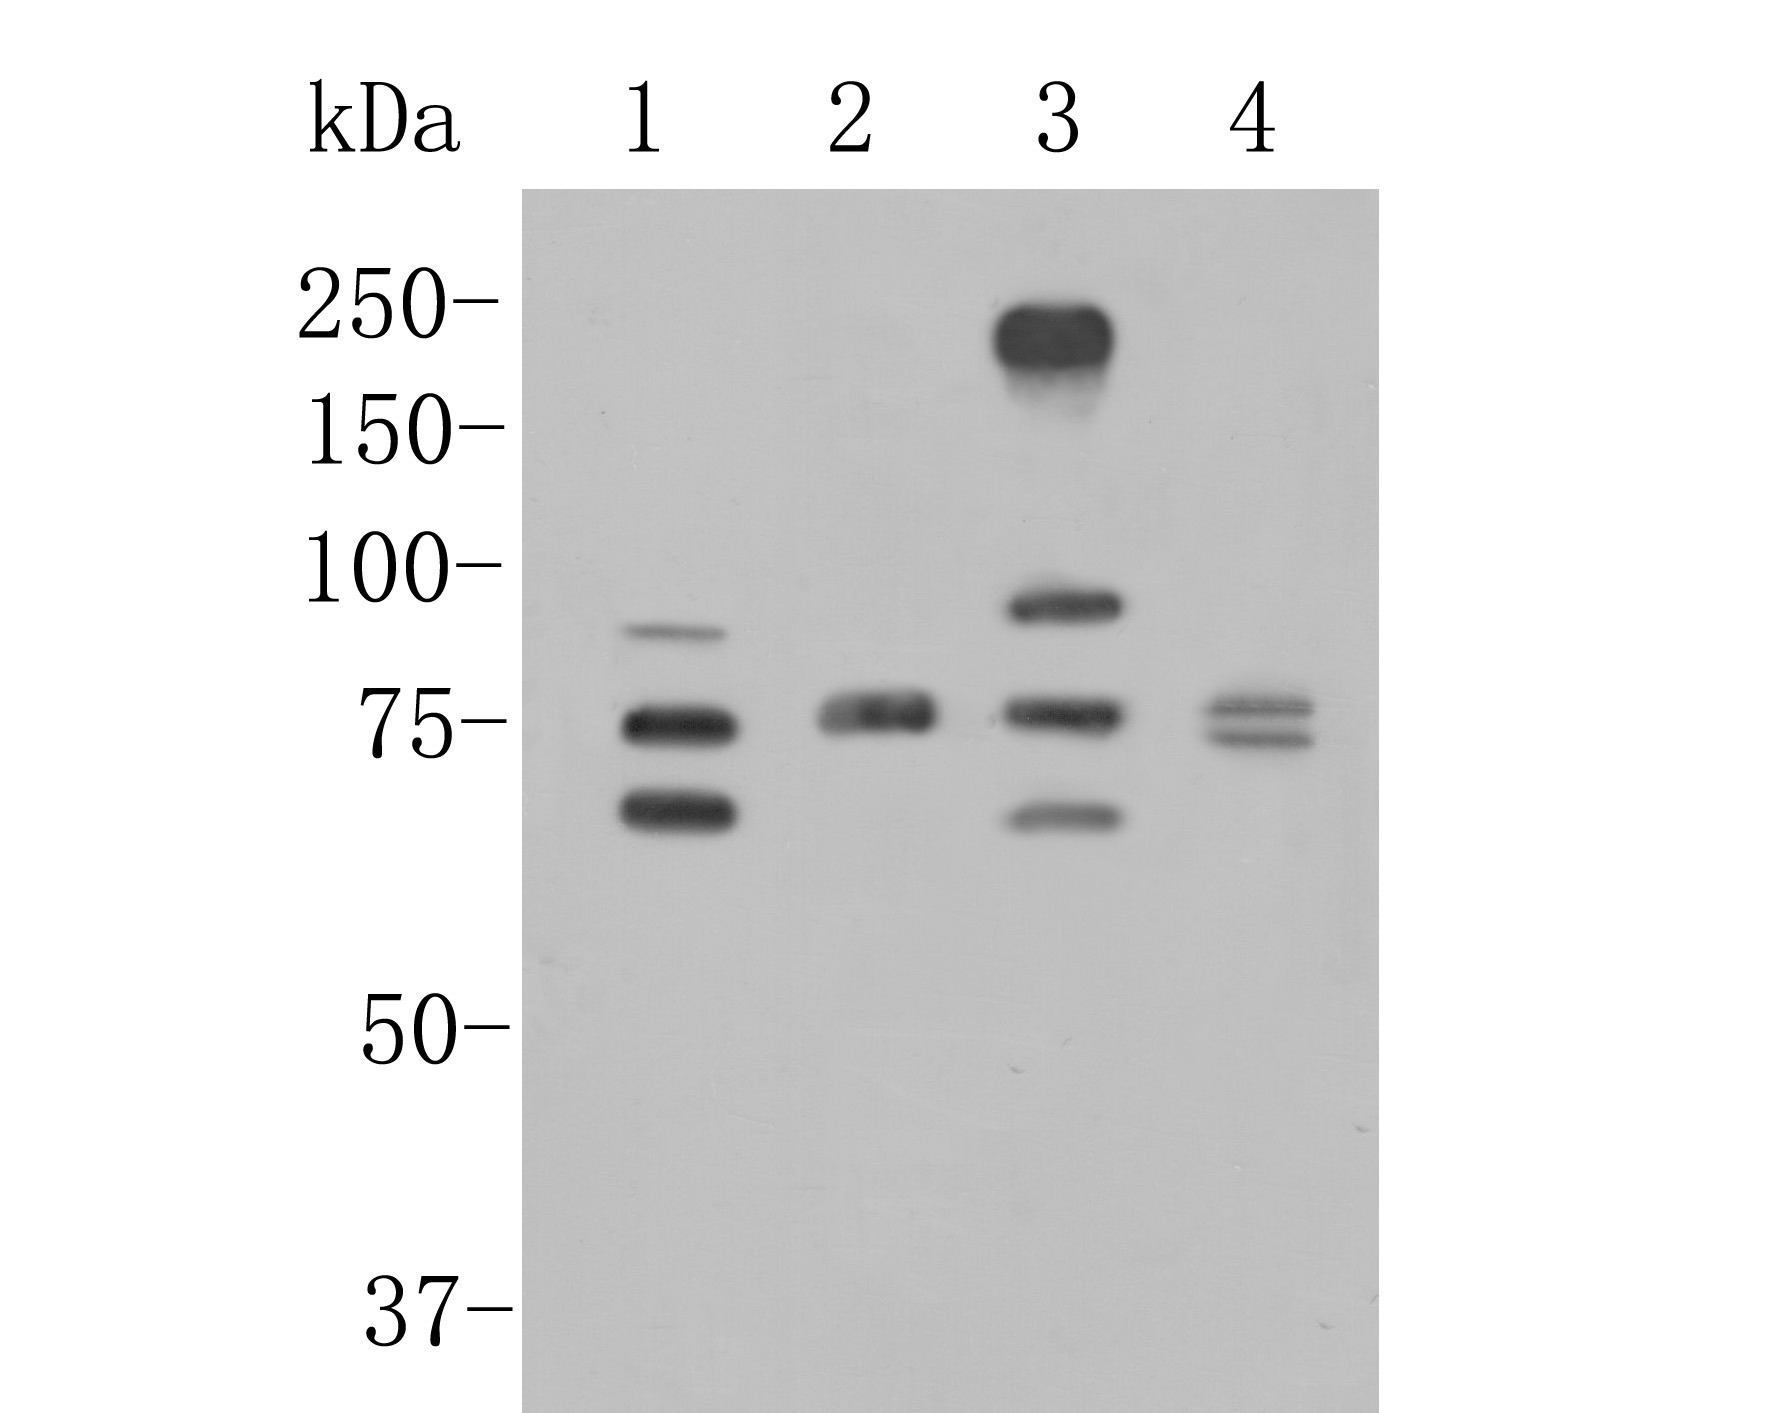 Western blot analysis of CEACAM6 on different lysates. Proteins were transferred to a PVDF membrane and blocked with 5% BSA in PBS for 1 hour at room temperature. The primary antibody (ER1902-54, 1/500) was used in 5% BSA at room temperature for 2 hours. Goat Anti-Rabbit IgG - HRP Secondary Antibody (HA1001) at 1:5,000 dilution was used for 1 hour at room temperature.<br /> Positive control: <br /> Lane 1: JAR cell lysate<br /> Lane 2: Rat lung tissue lysate<br /> Lane 3: MCF-7 cell lysate<br /> Lane 2: Human lung tissue lysate